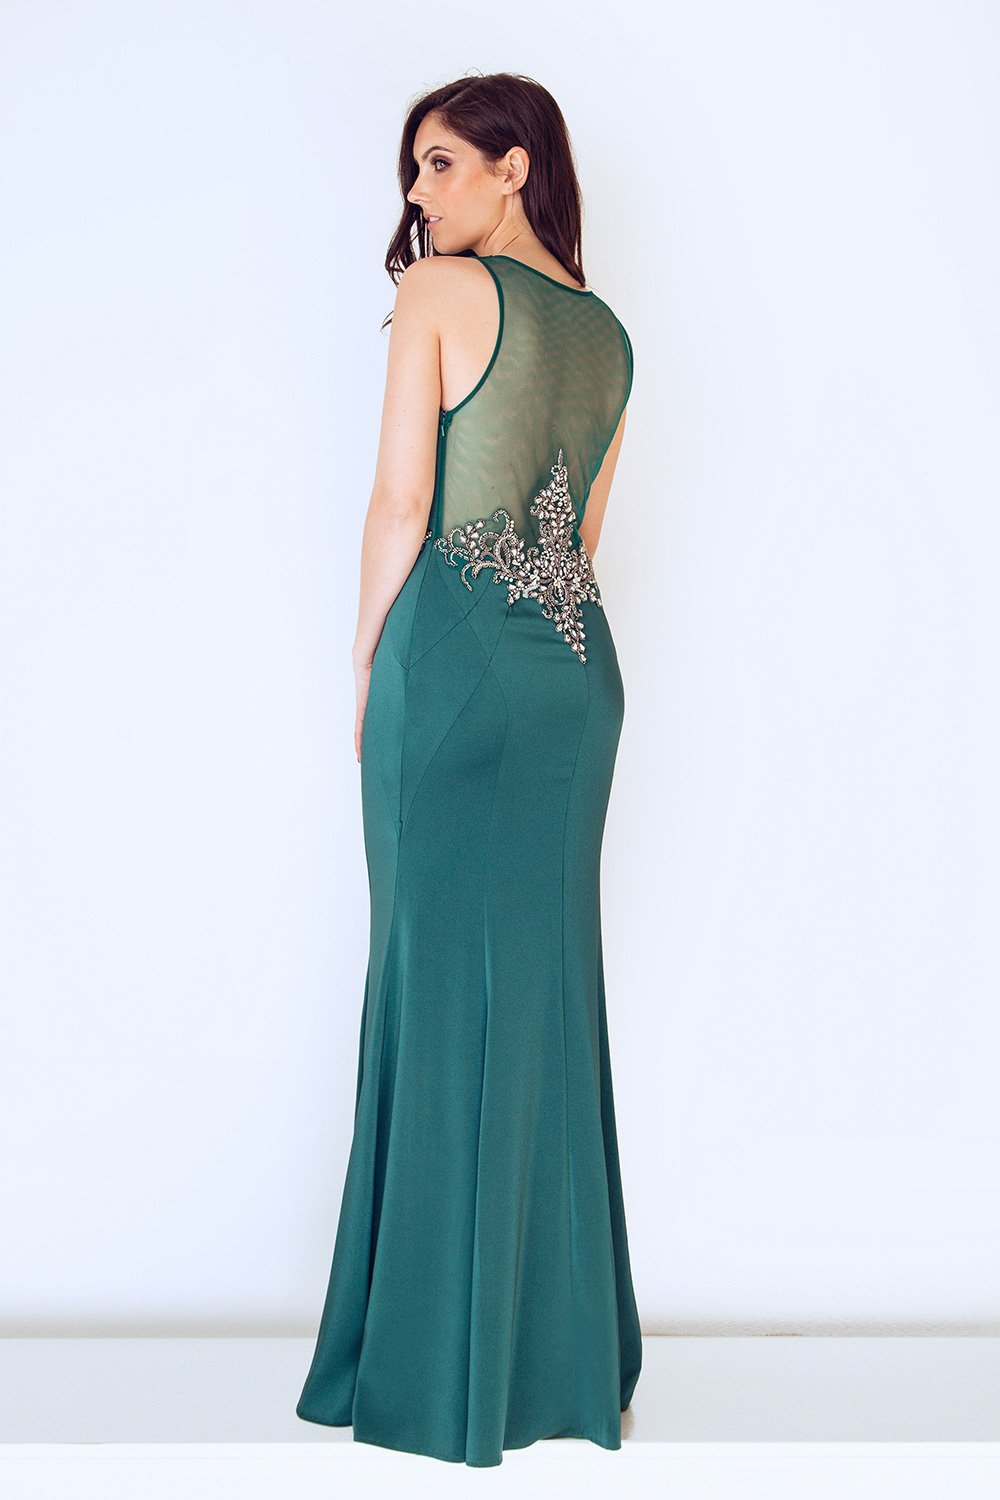 Emerald Green Long Satin Evening Gown